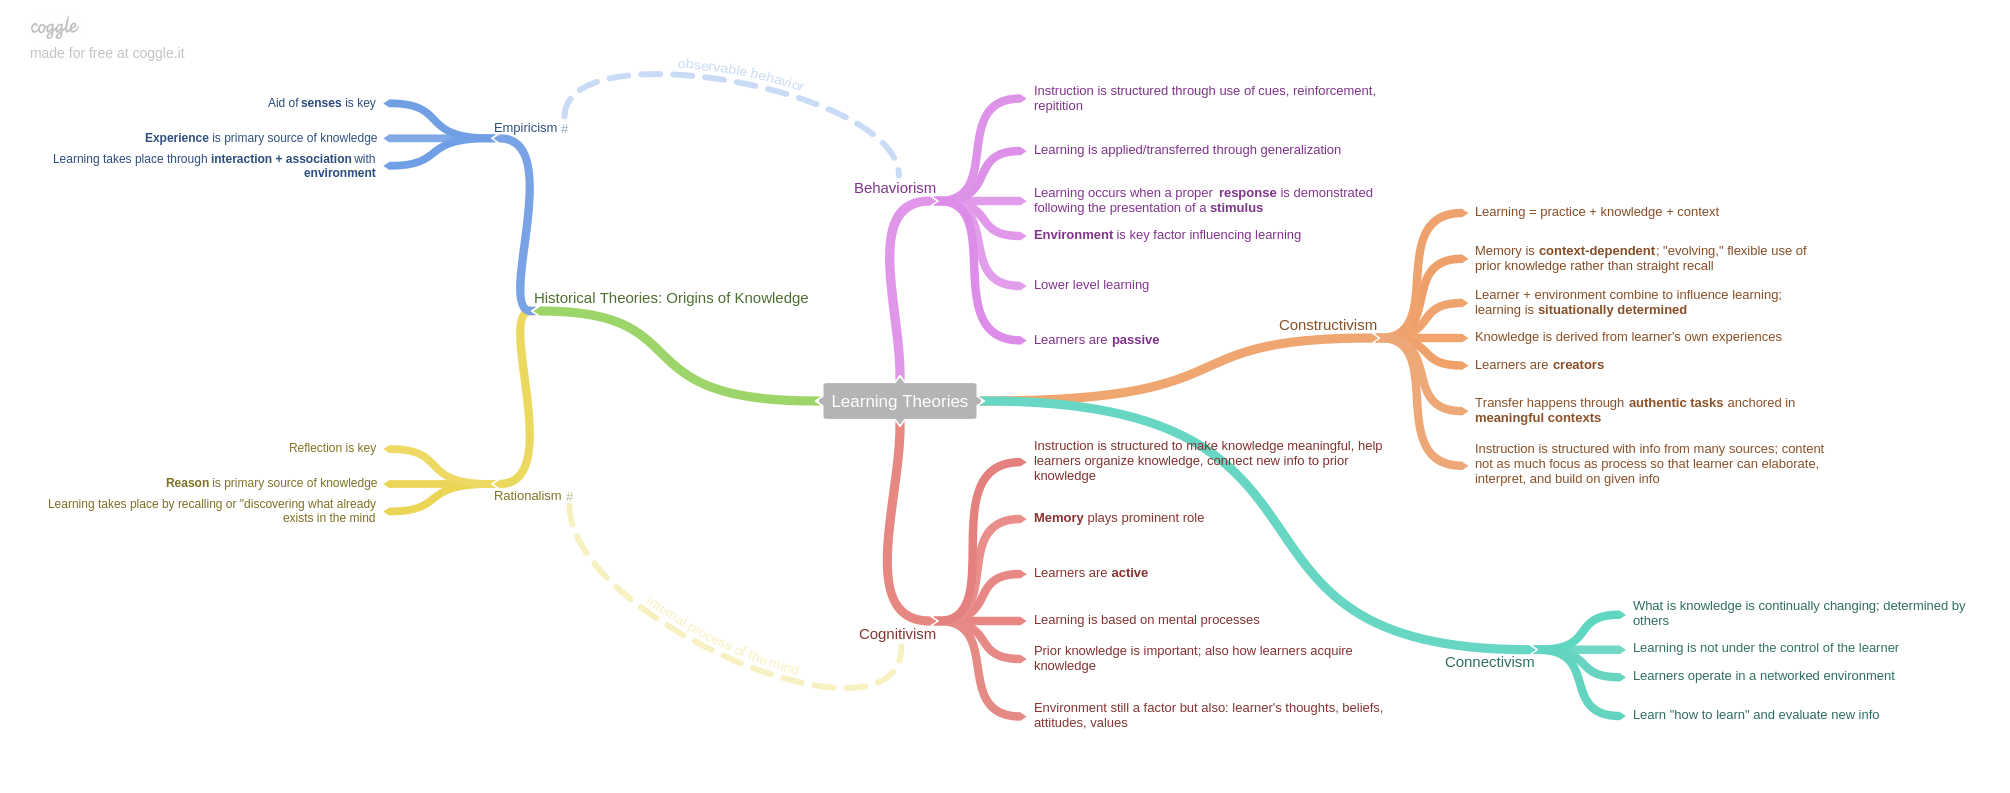 concept map of learning theories